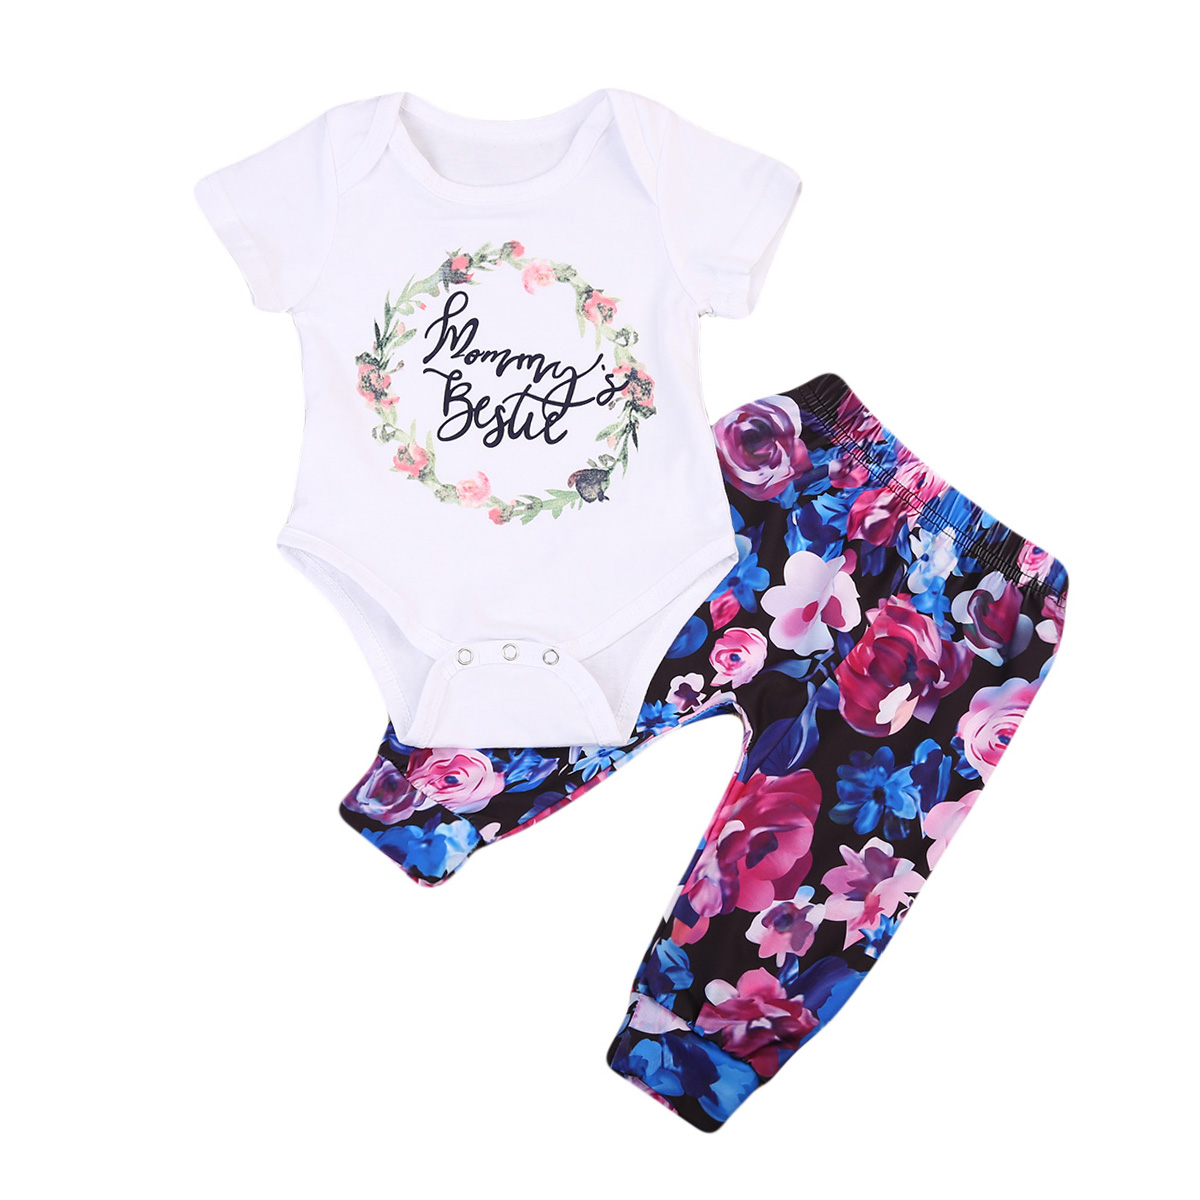 Newborn Toddler Baby Girls Clothes Short Sleeve Printed Romper Jumpsuit Bodysuit+Pants Outfits Set